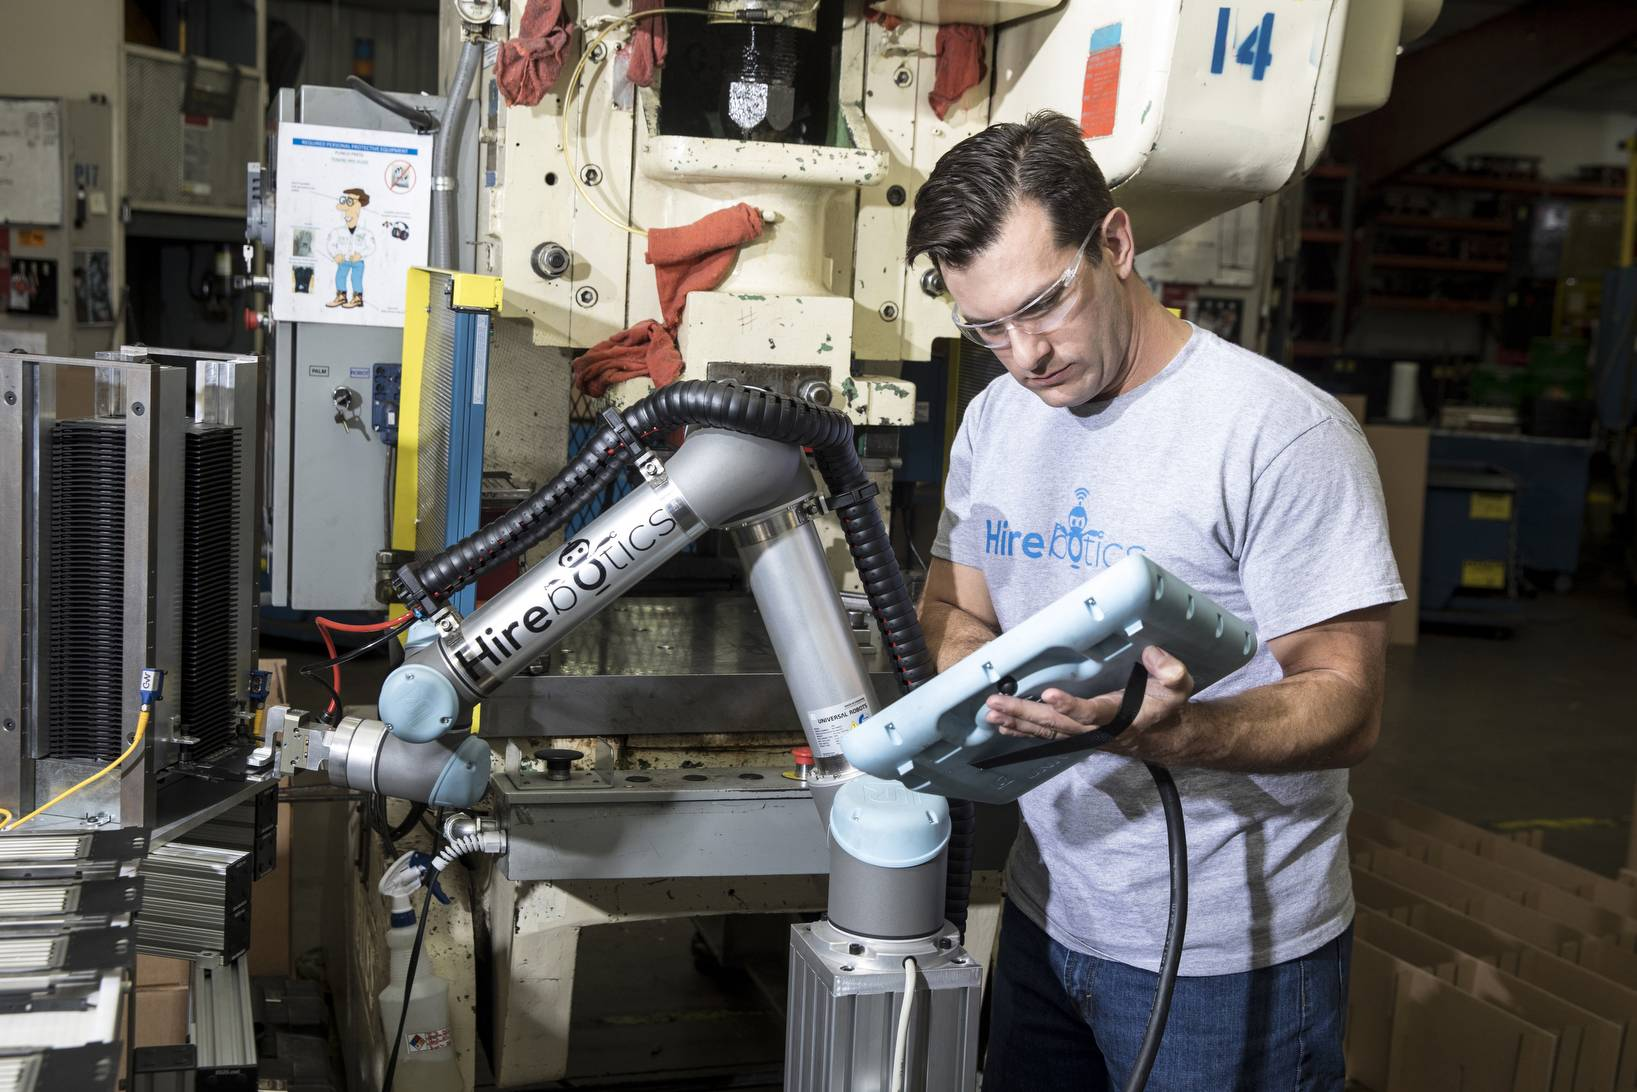 Rob Goldiez, co-founder of Hirebotics, configures a robot at Tenere Inc. in Dresser, Wisconsin.